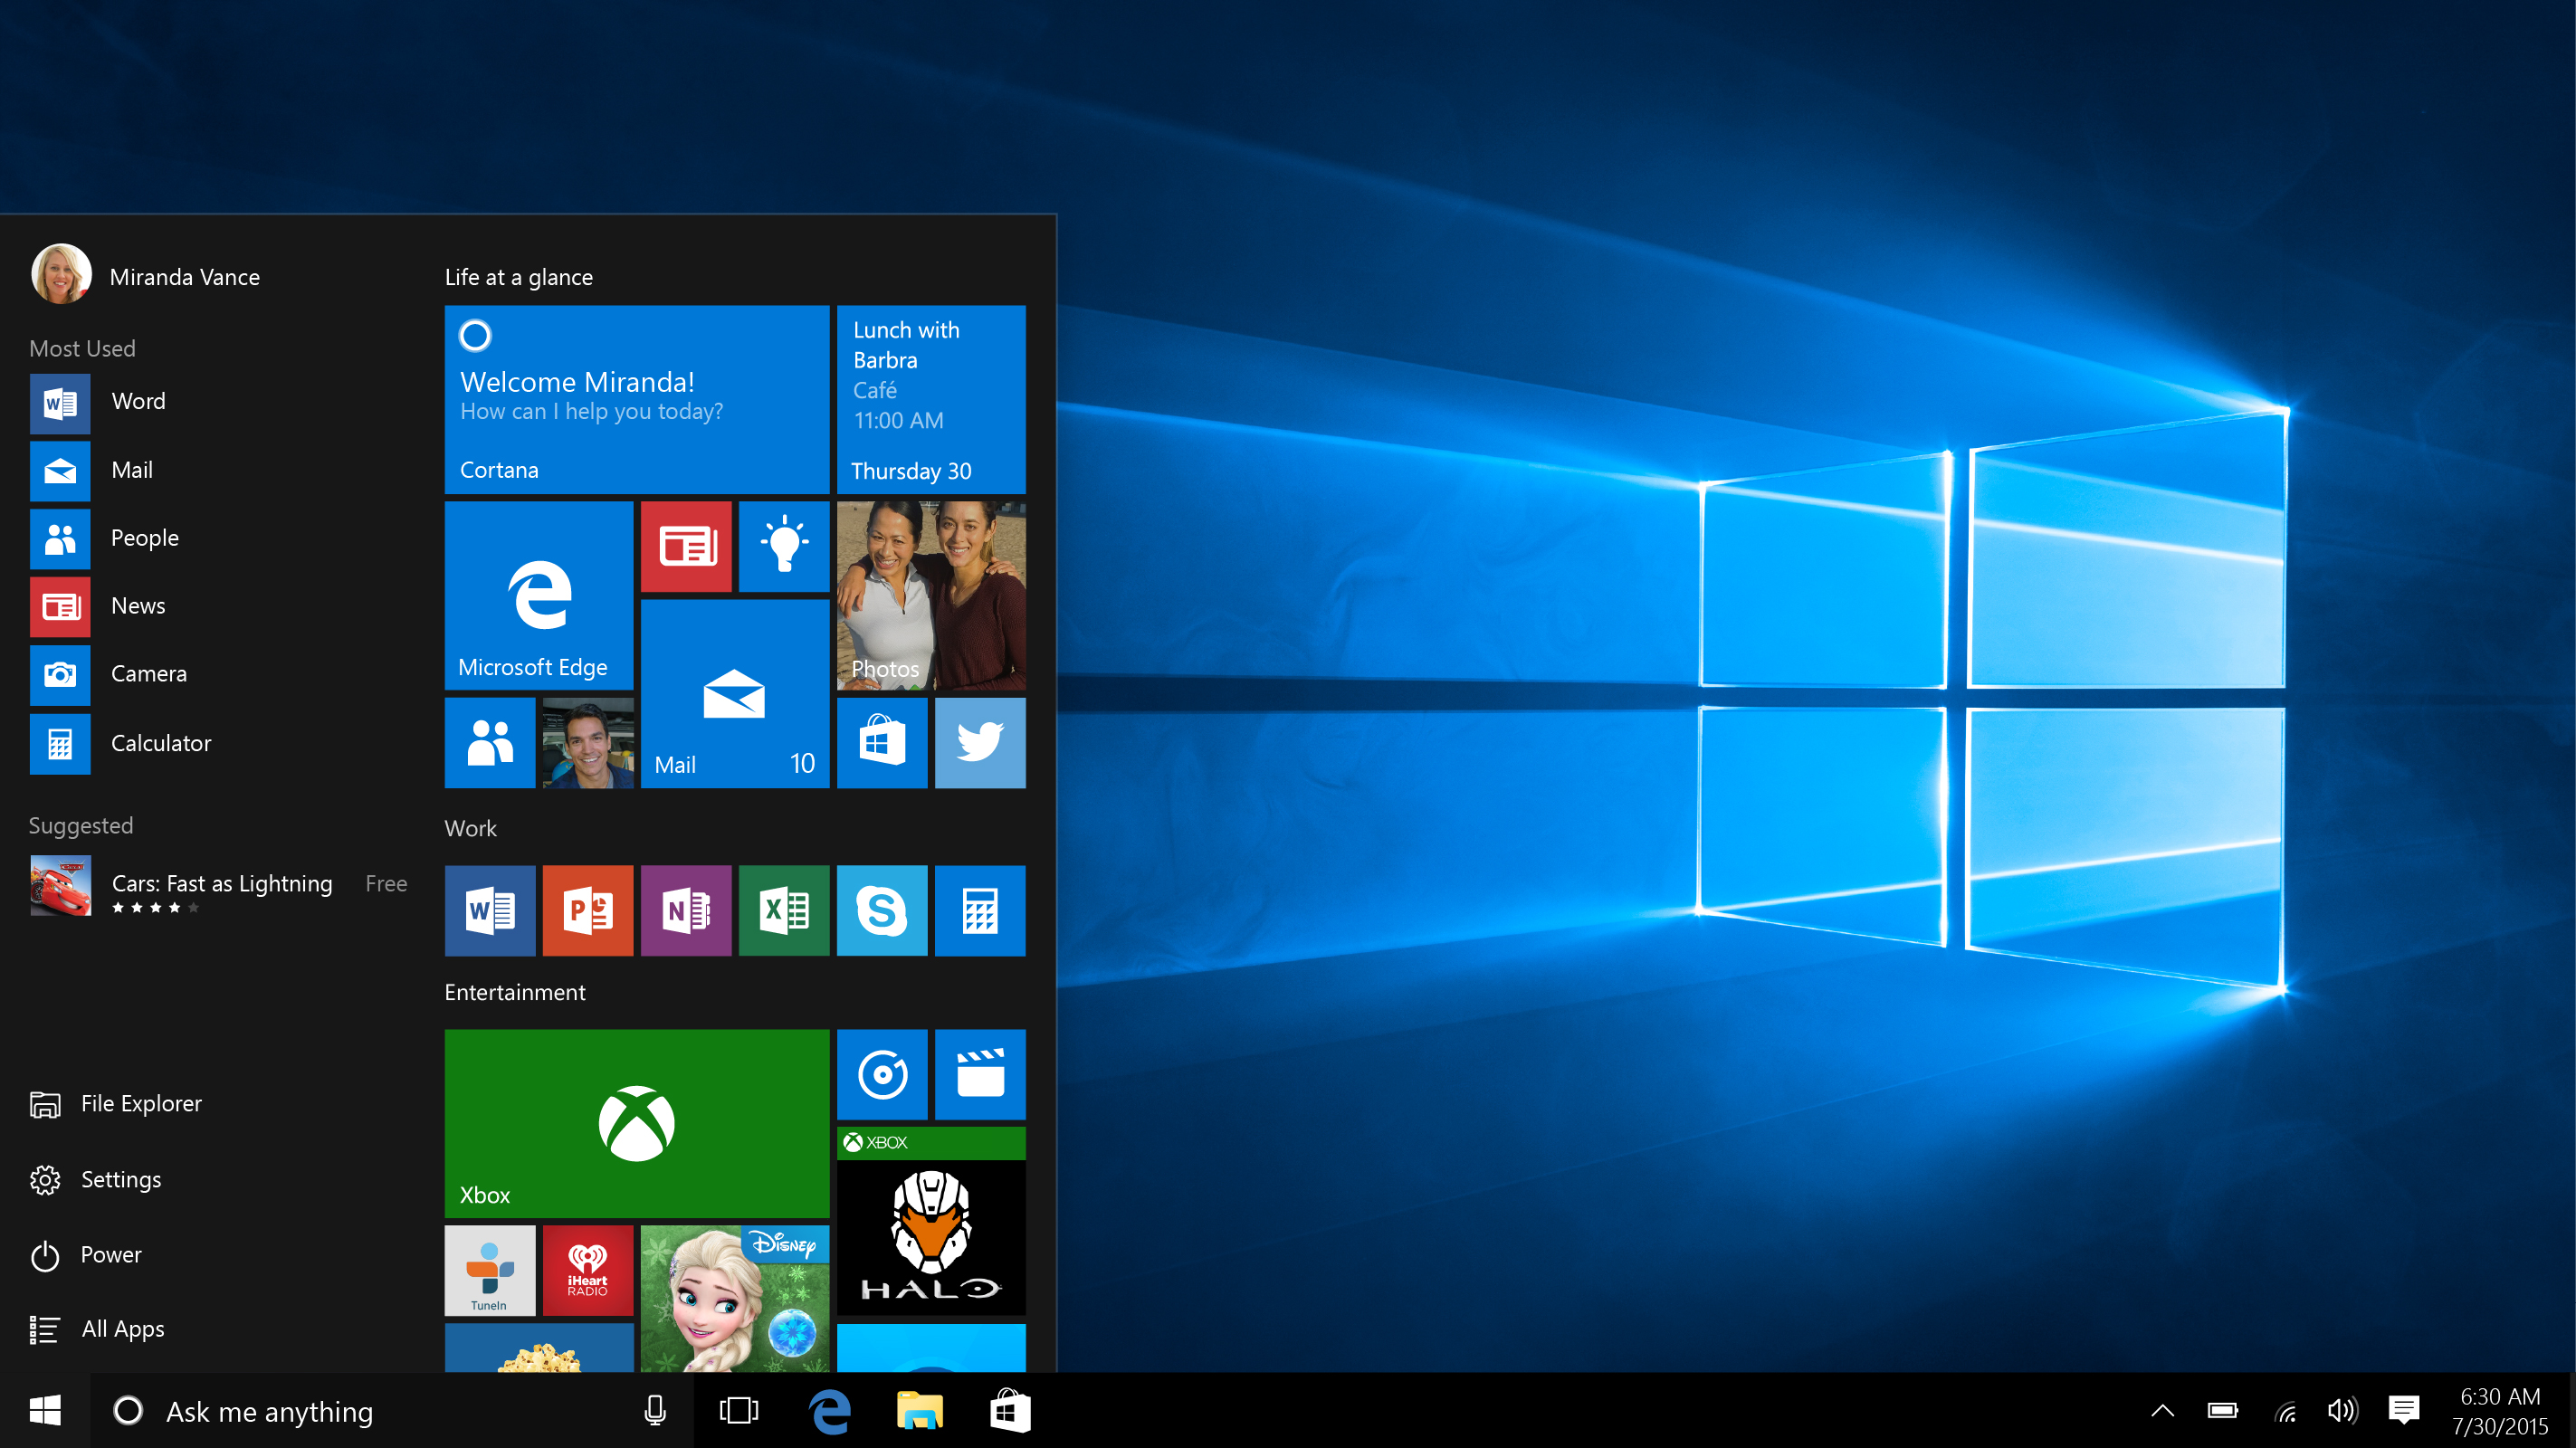 Column: Should you download the Windows 10 update?